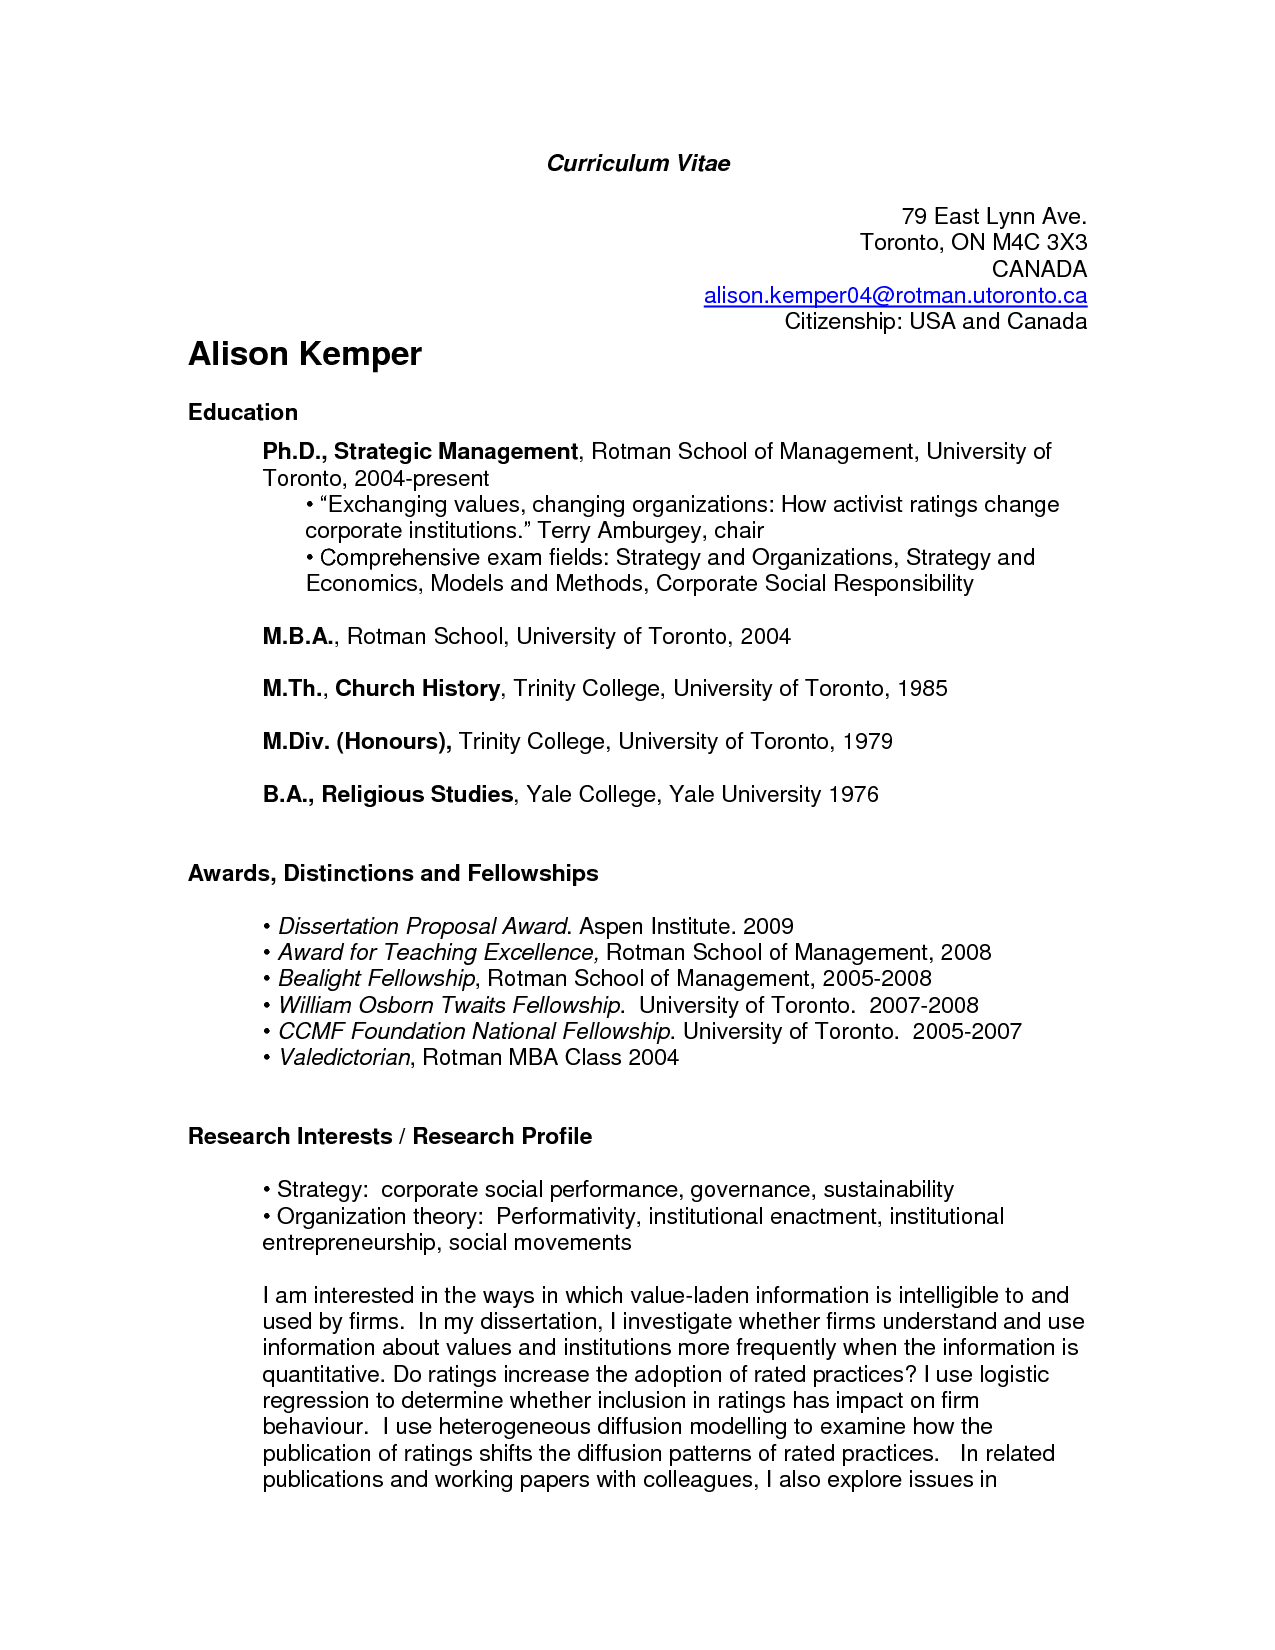 U Of T 4 Resume Examples Pinterest Sample Resume Resume